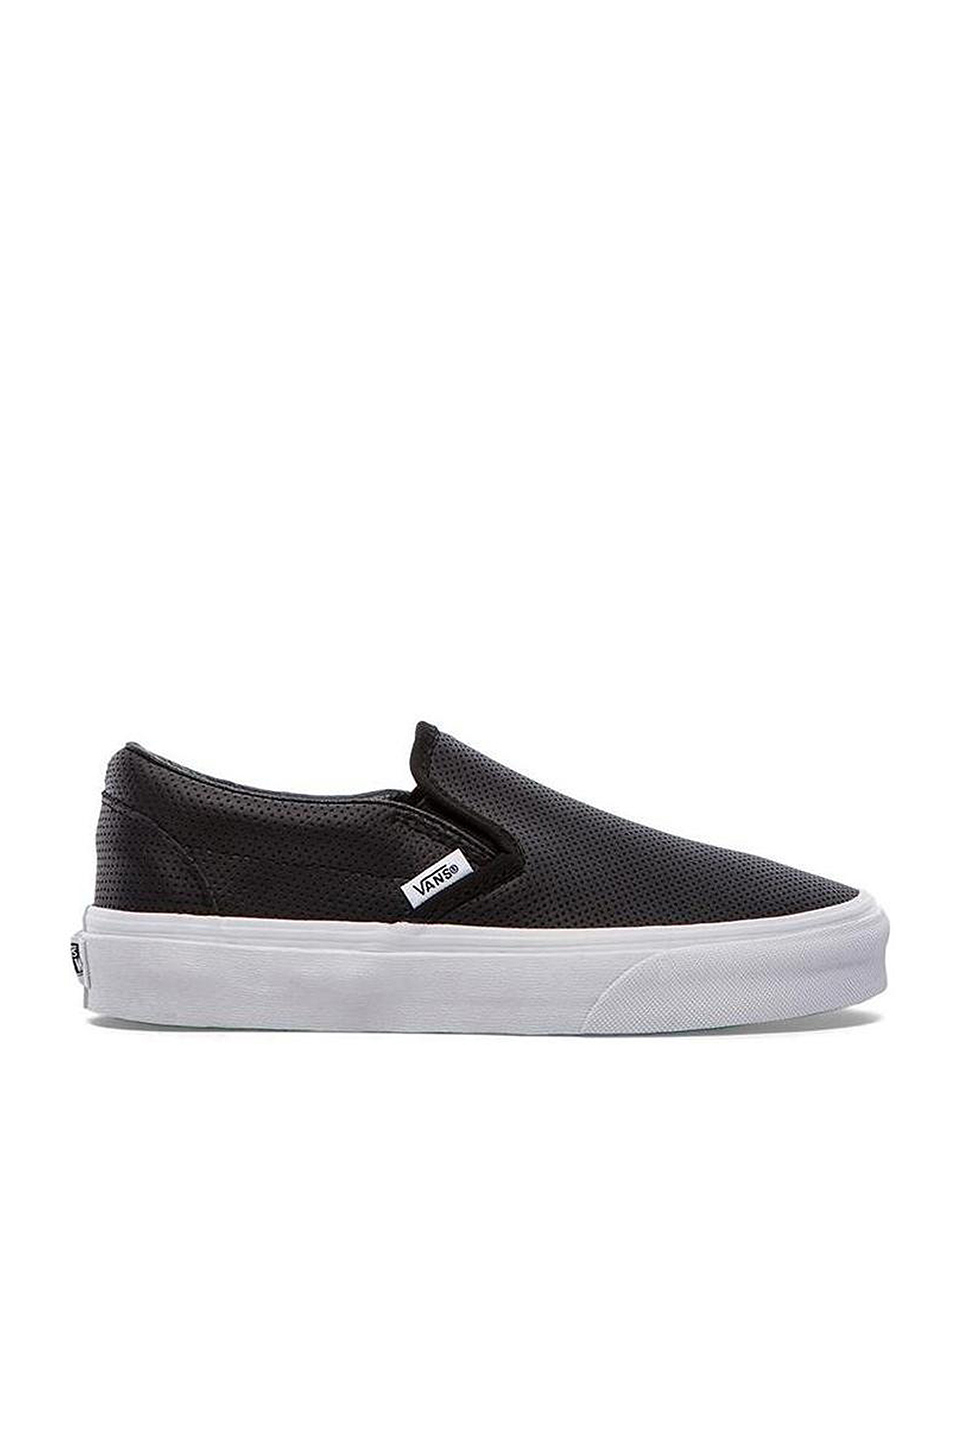 Perforated SneakerwomenLeather Vans 'classic' On Slip Black 8nkN0wPOX